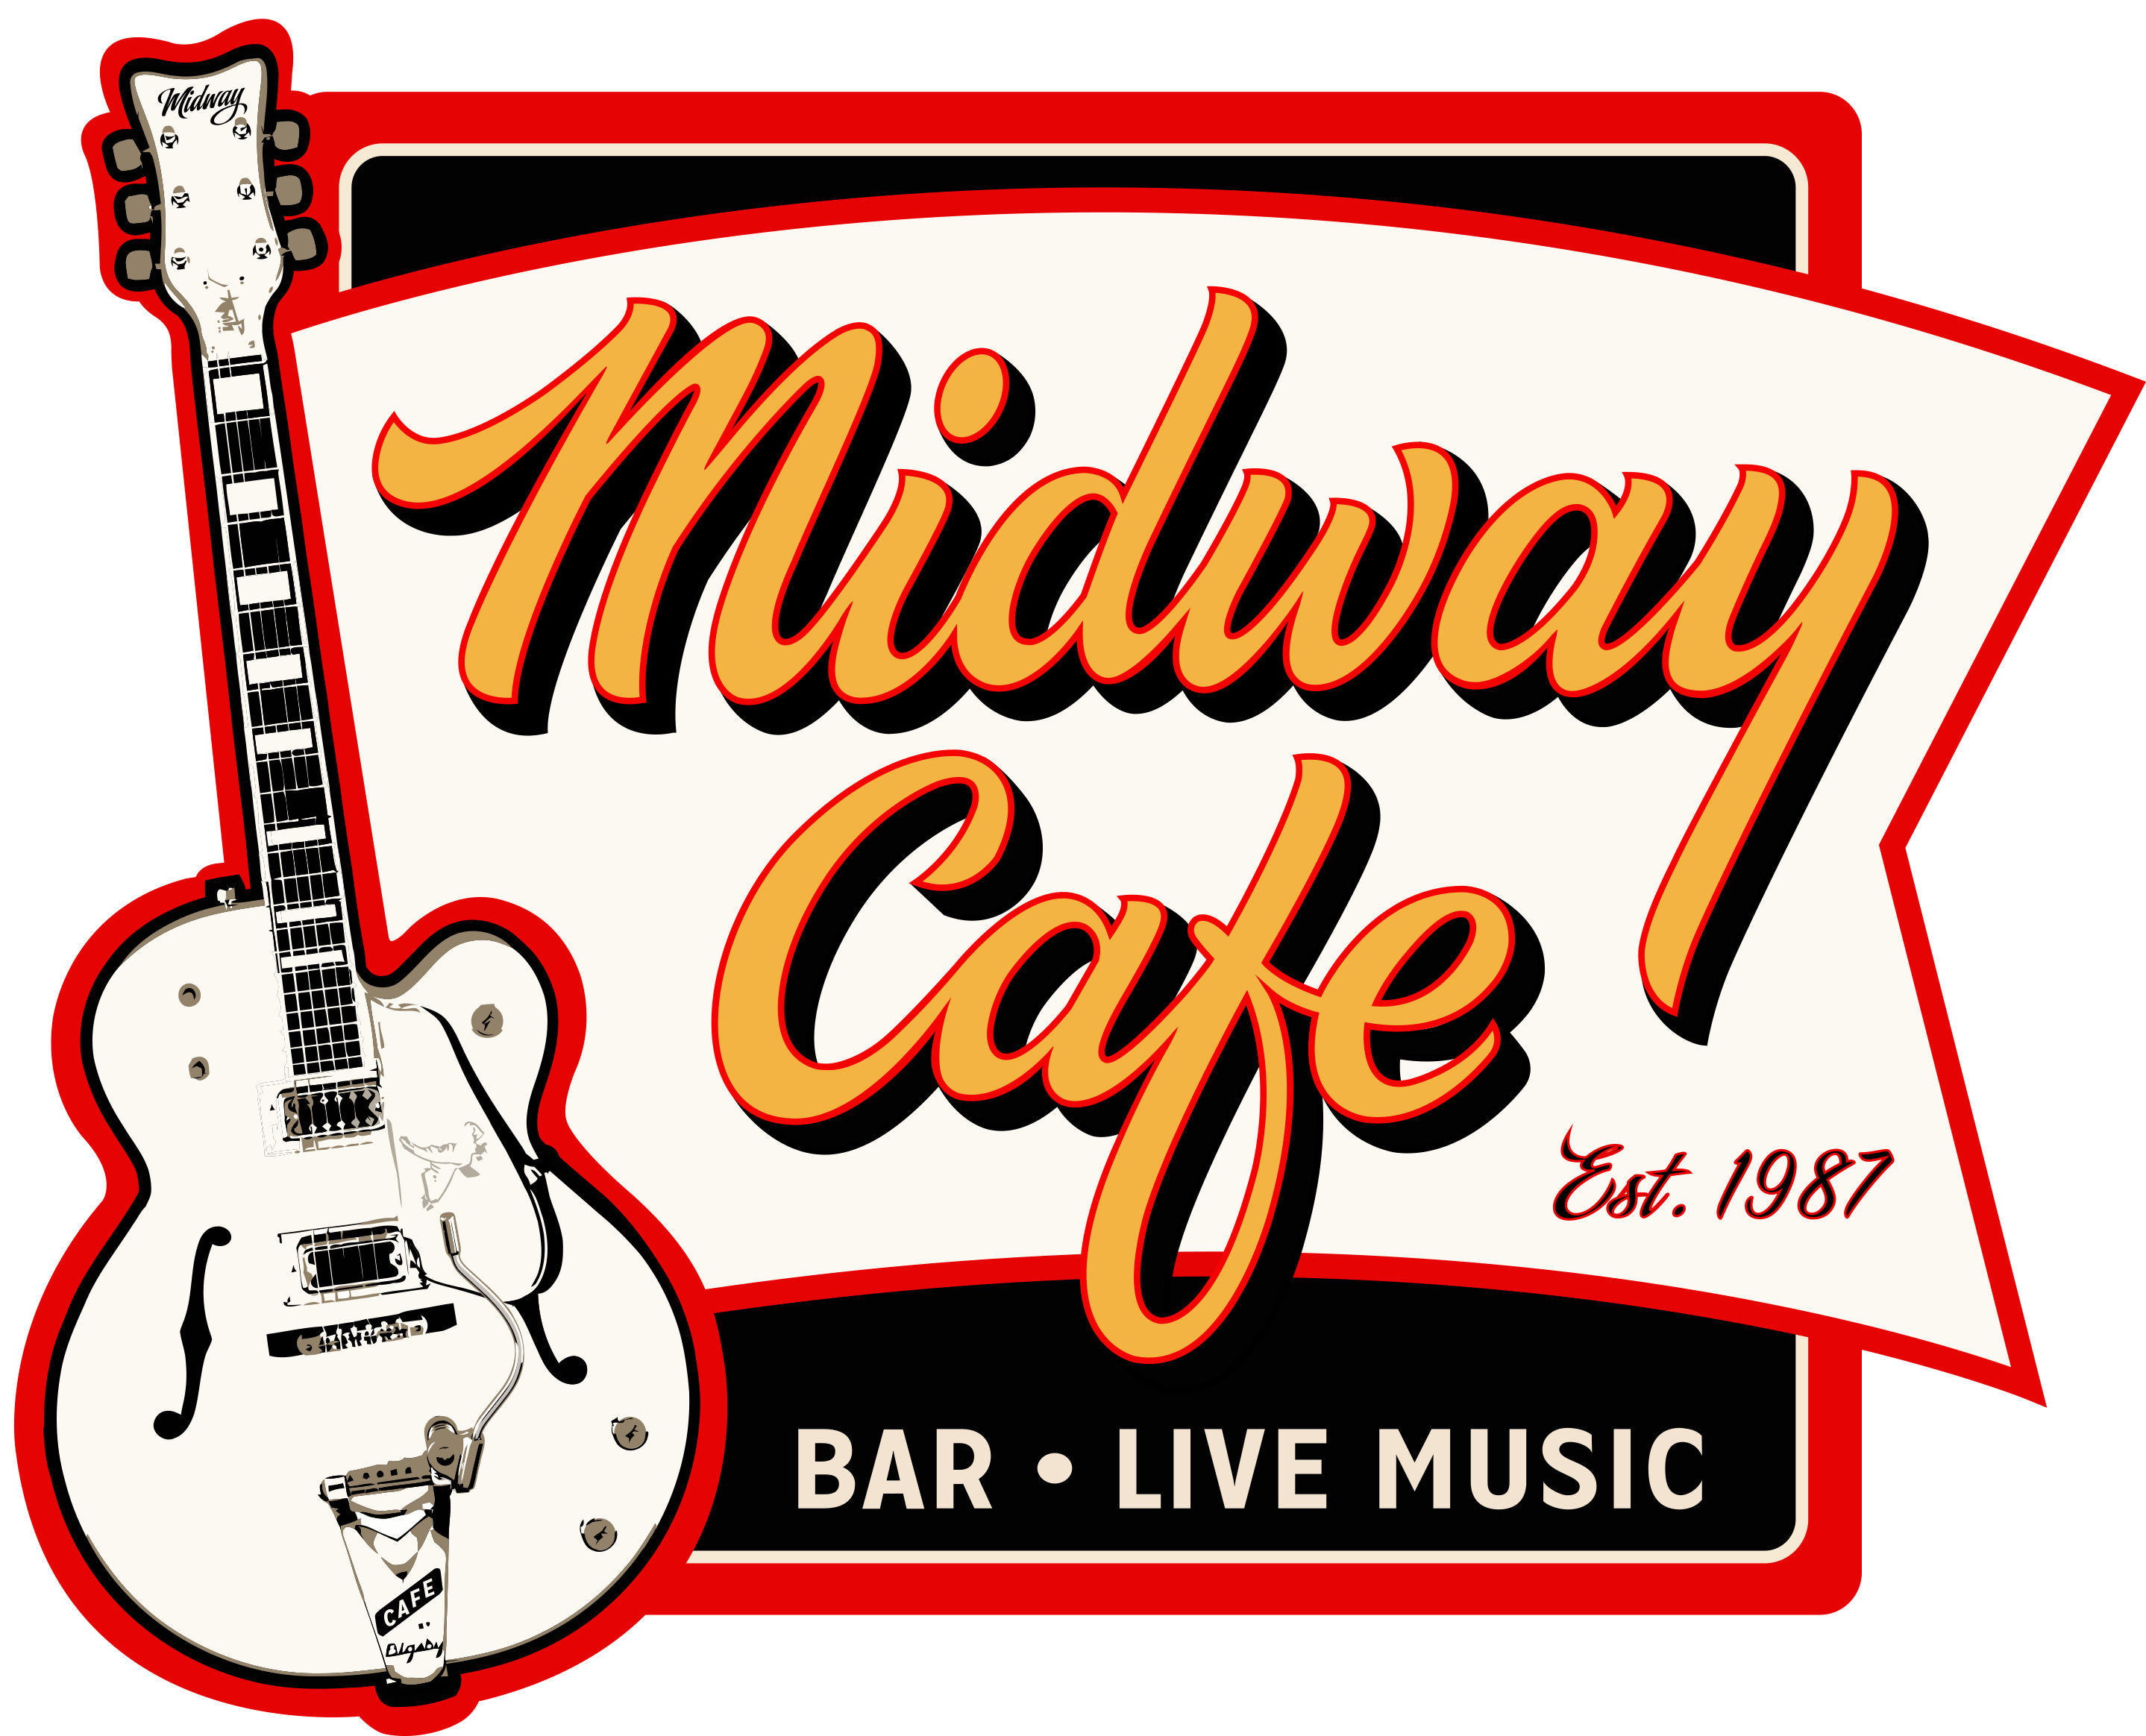 Saugus band png. Midway cafe